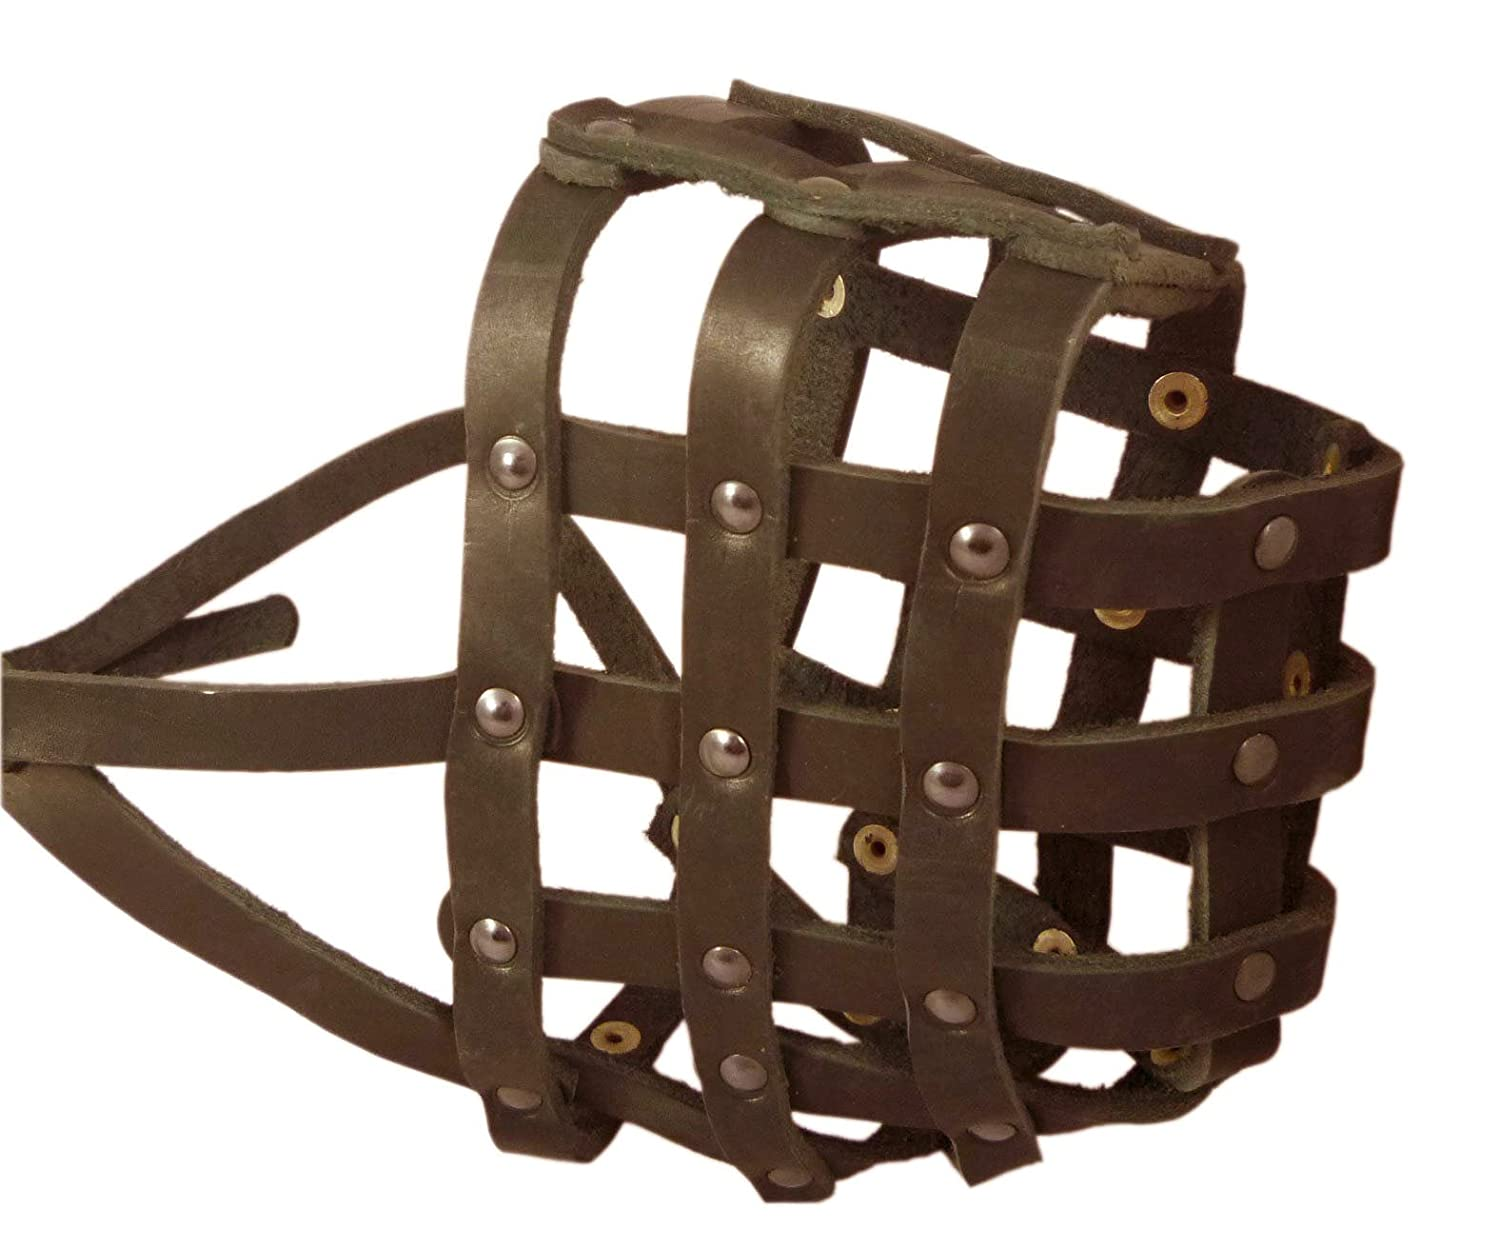 Real Leather Dog Basket Muzzle  115 Brown (Circumference 18 Snout Length 4.7) XXLarge Mastiff Great Dane